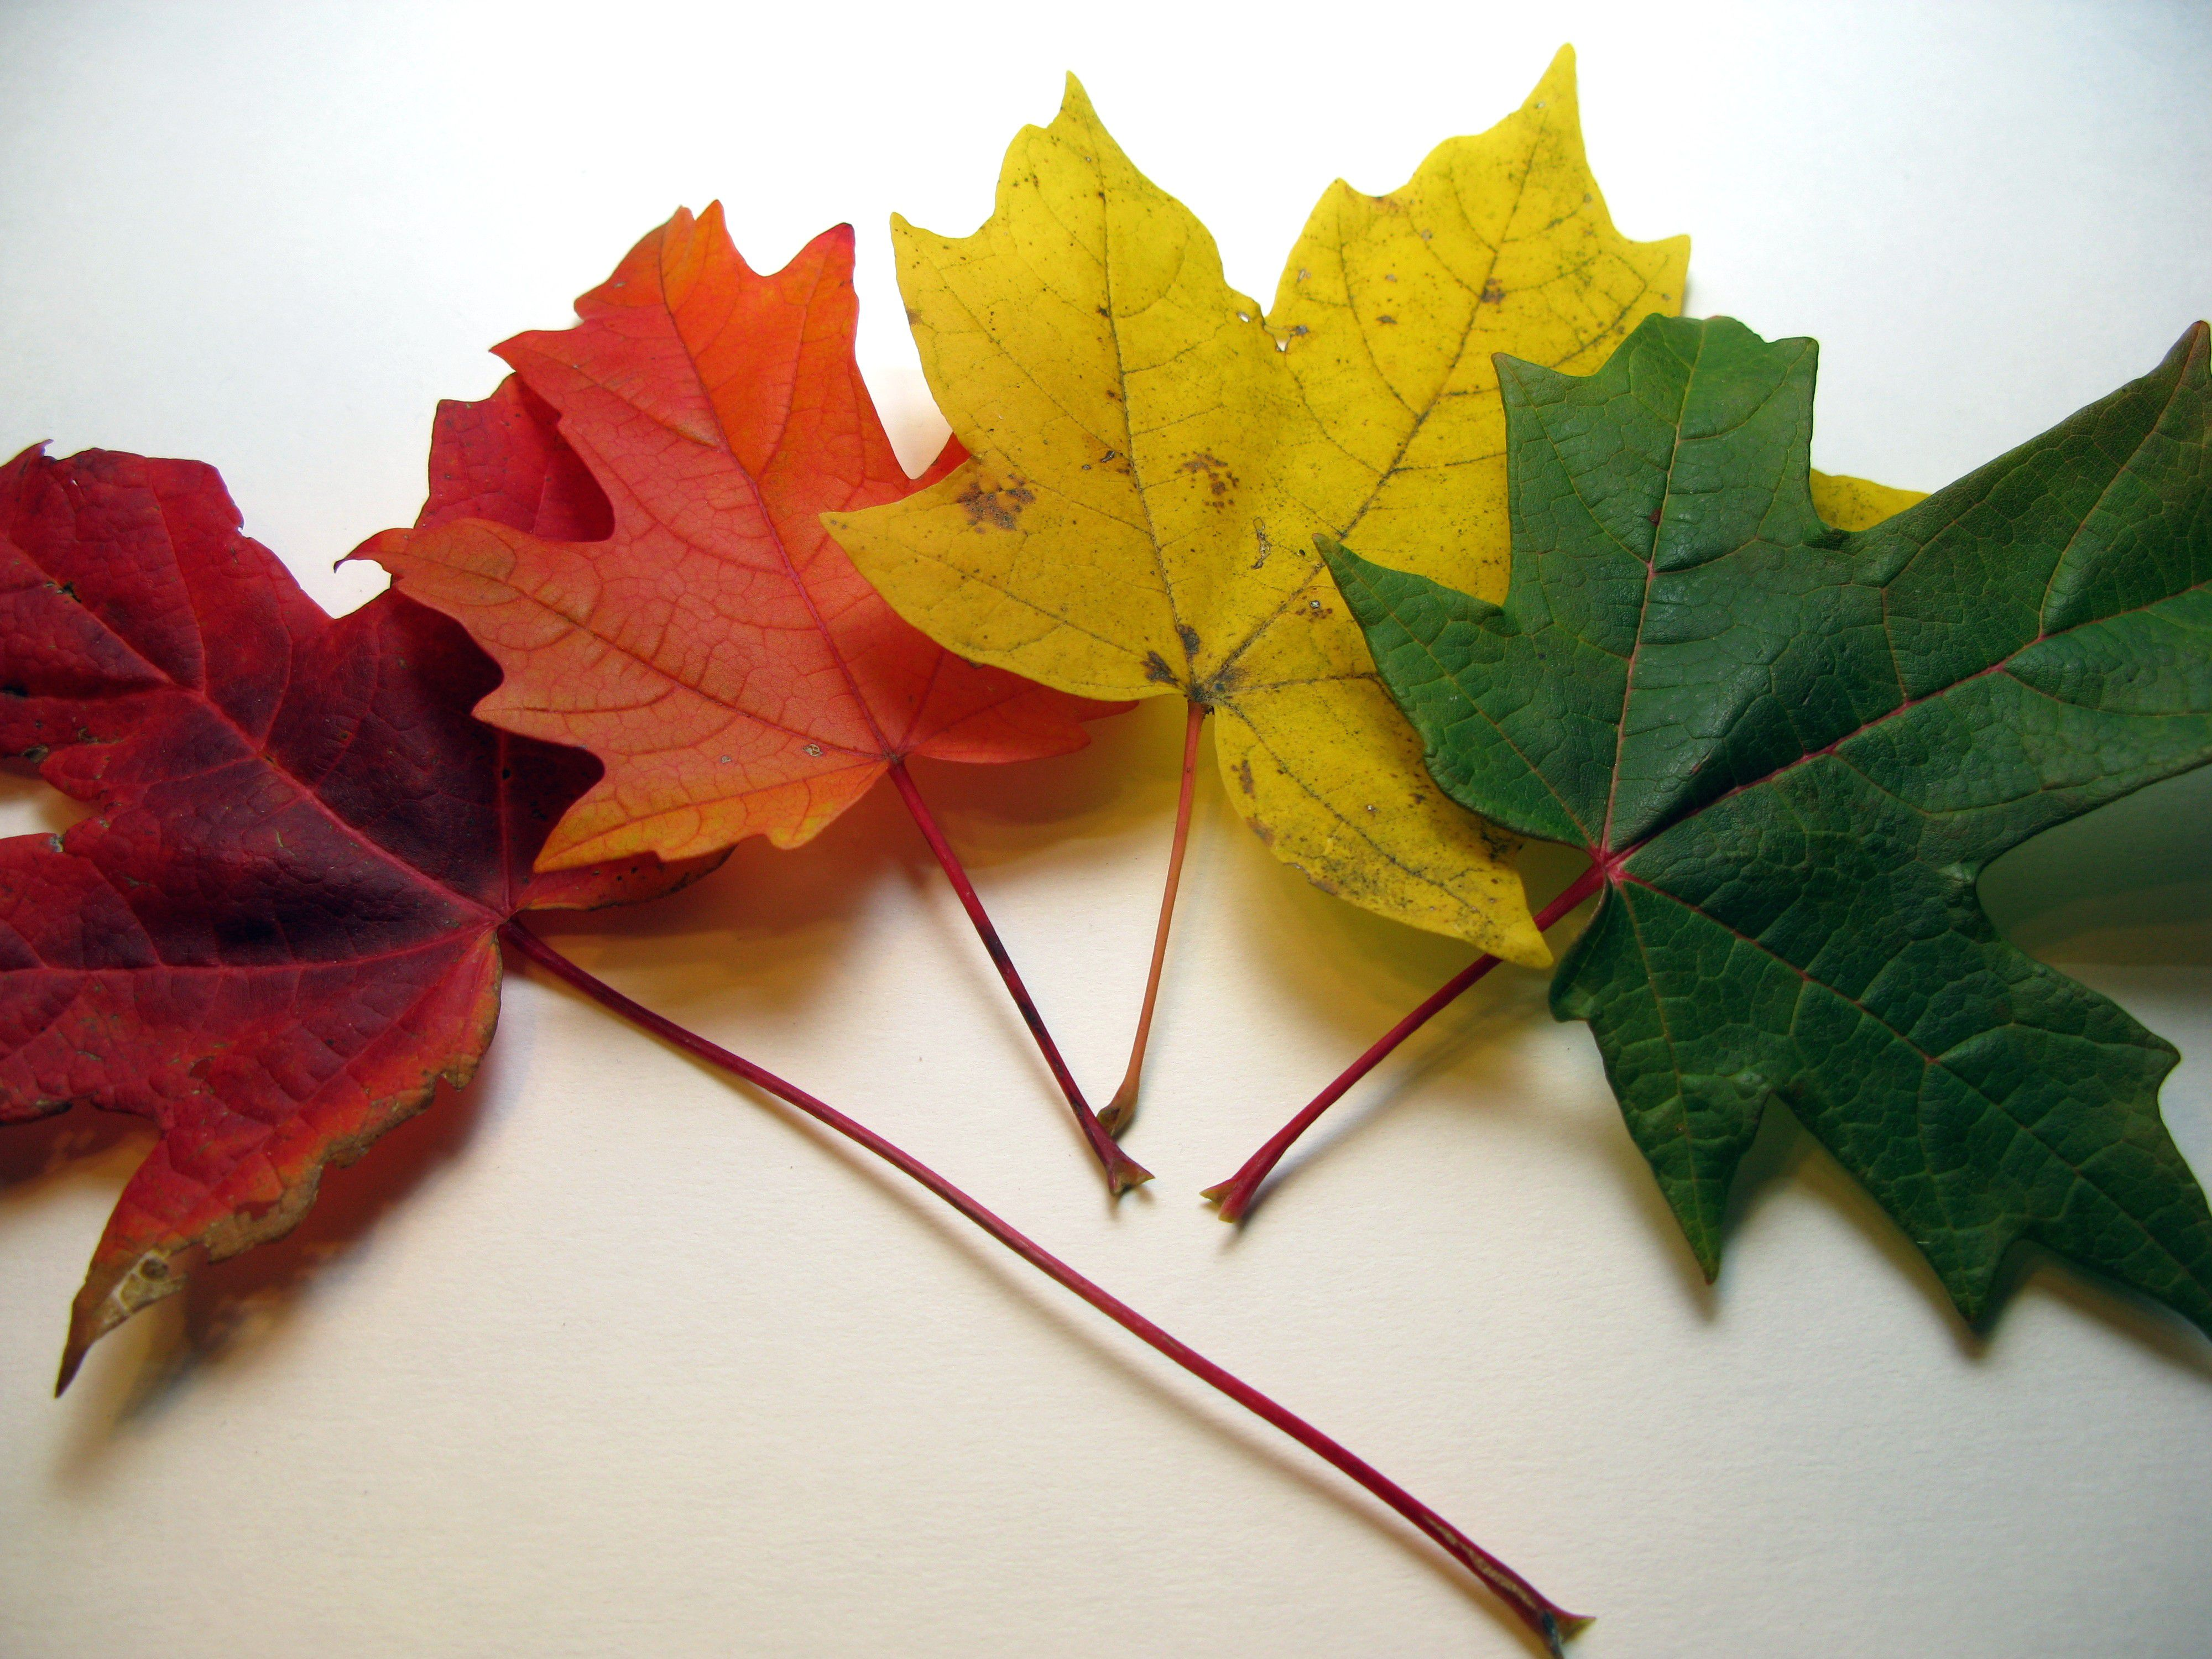 6 Ways To Use Leaves In Your Garden